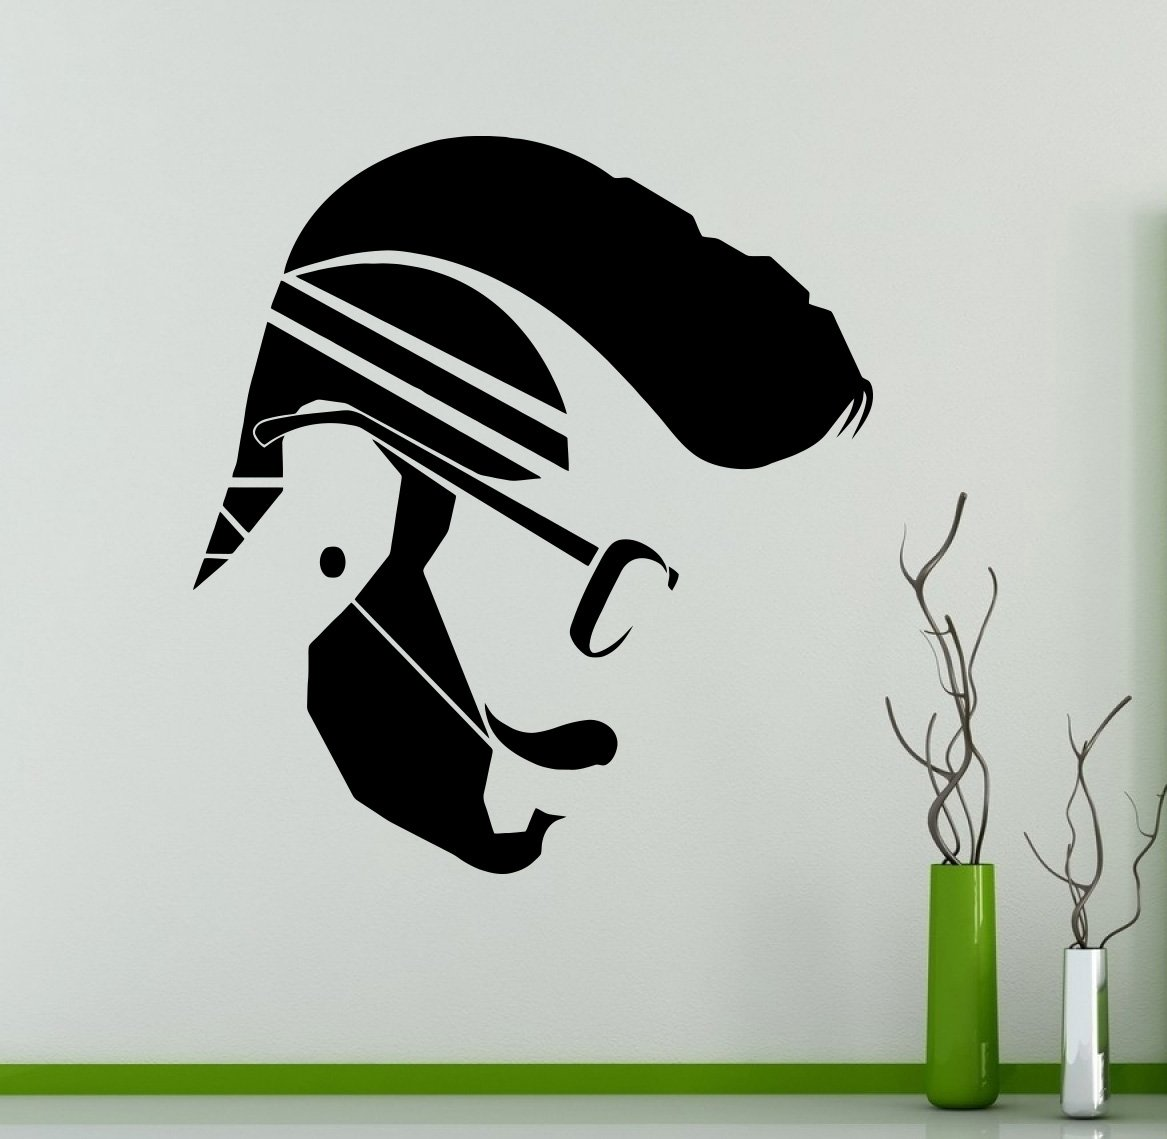 amazon com man hair style hipster salon wall decal beauty salon amazon com man hair style hipster salon wall decal beauty salon wall vinyl sticker hair care wall graphics shop window sticker 3 hs home kitchen